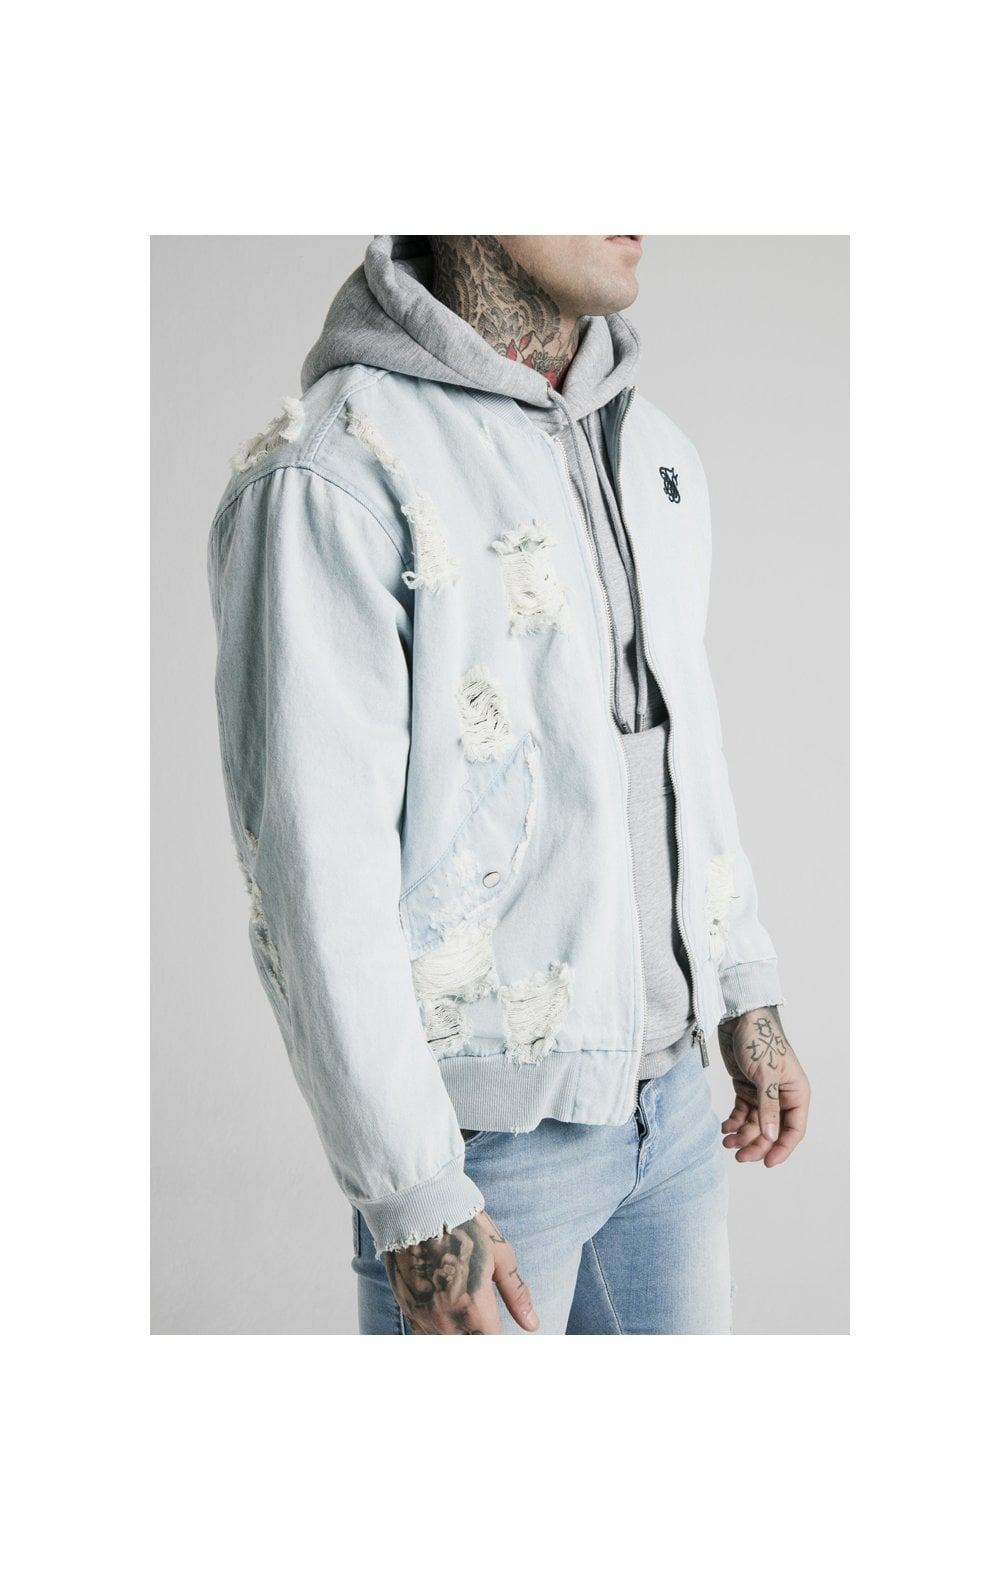 SikSilk Distressed Denim Bomber Jacket - Light Blue (1)